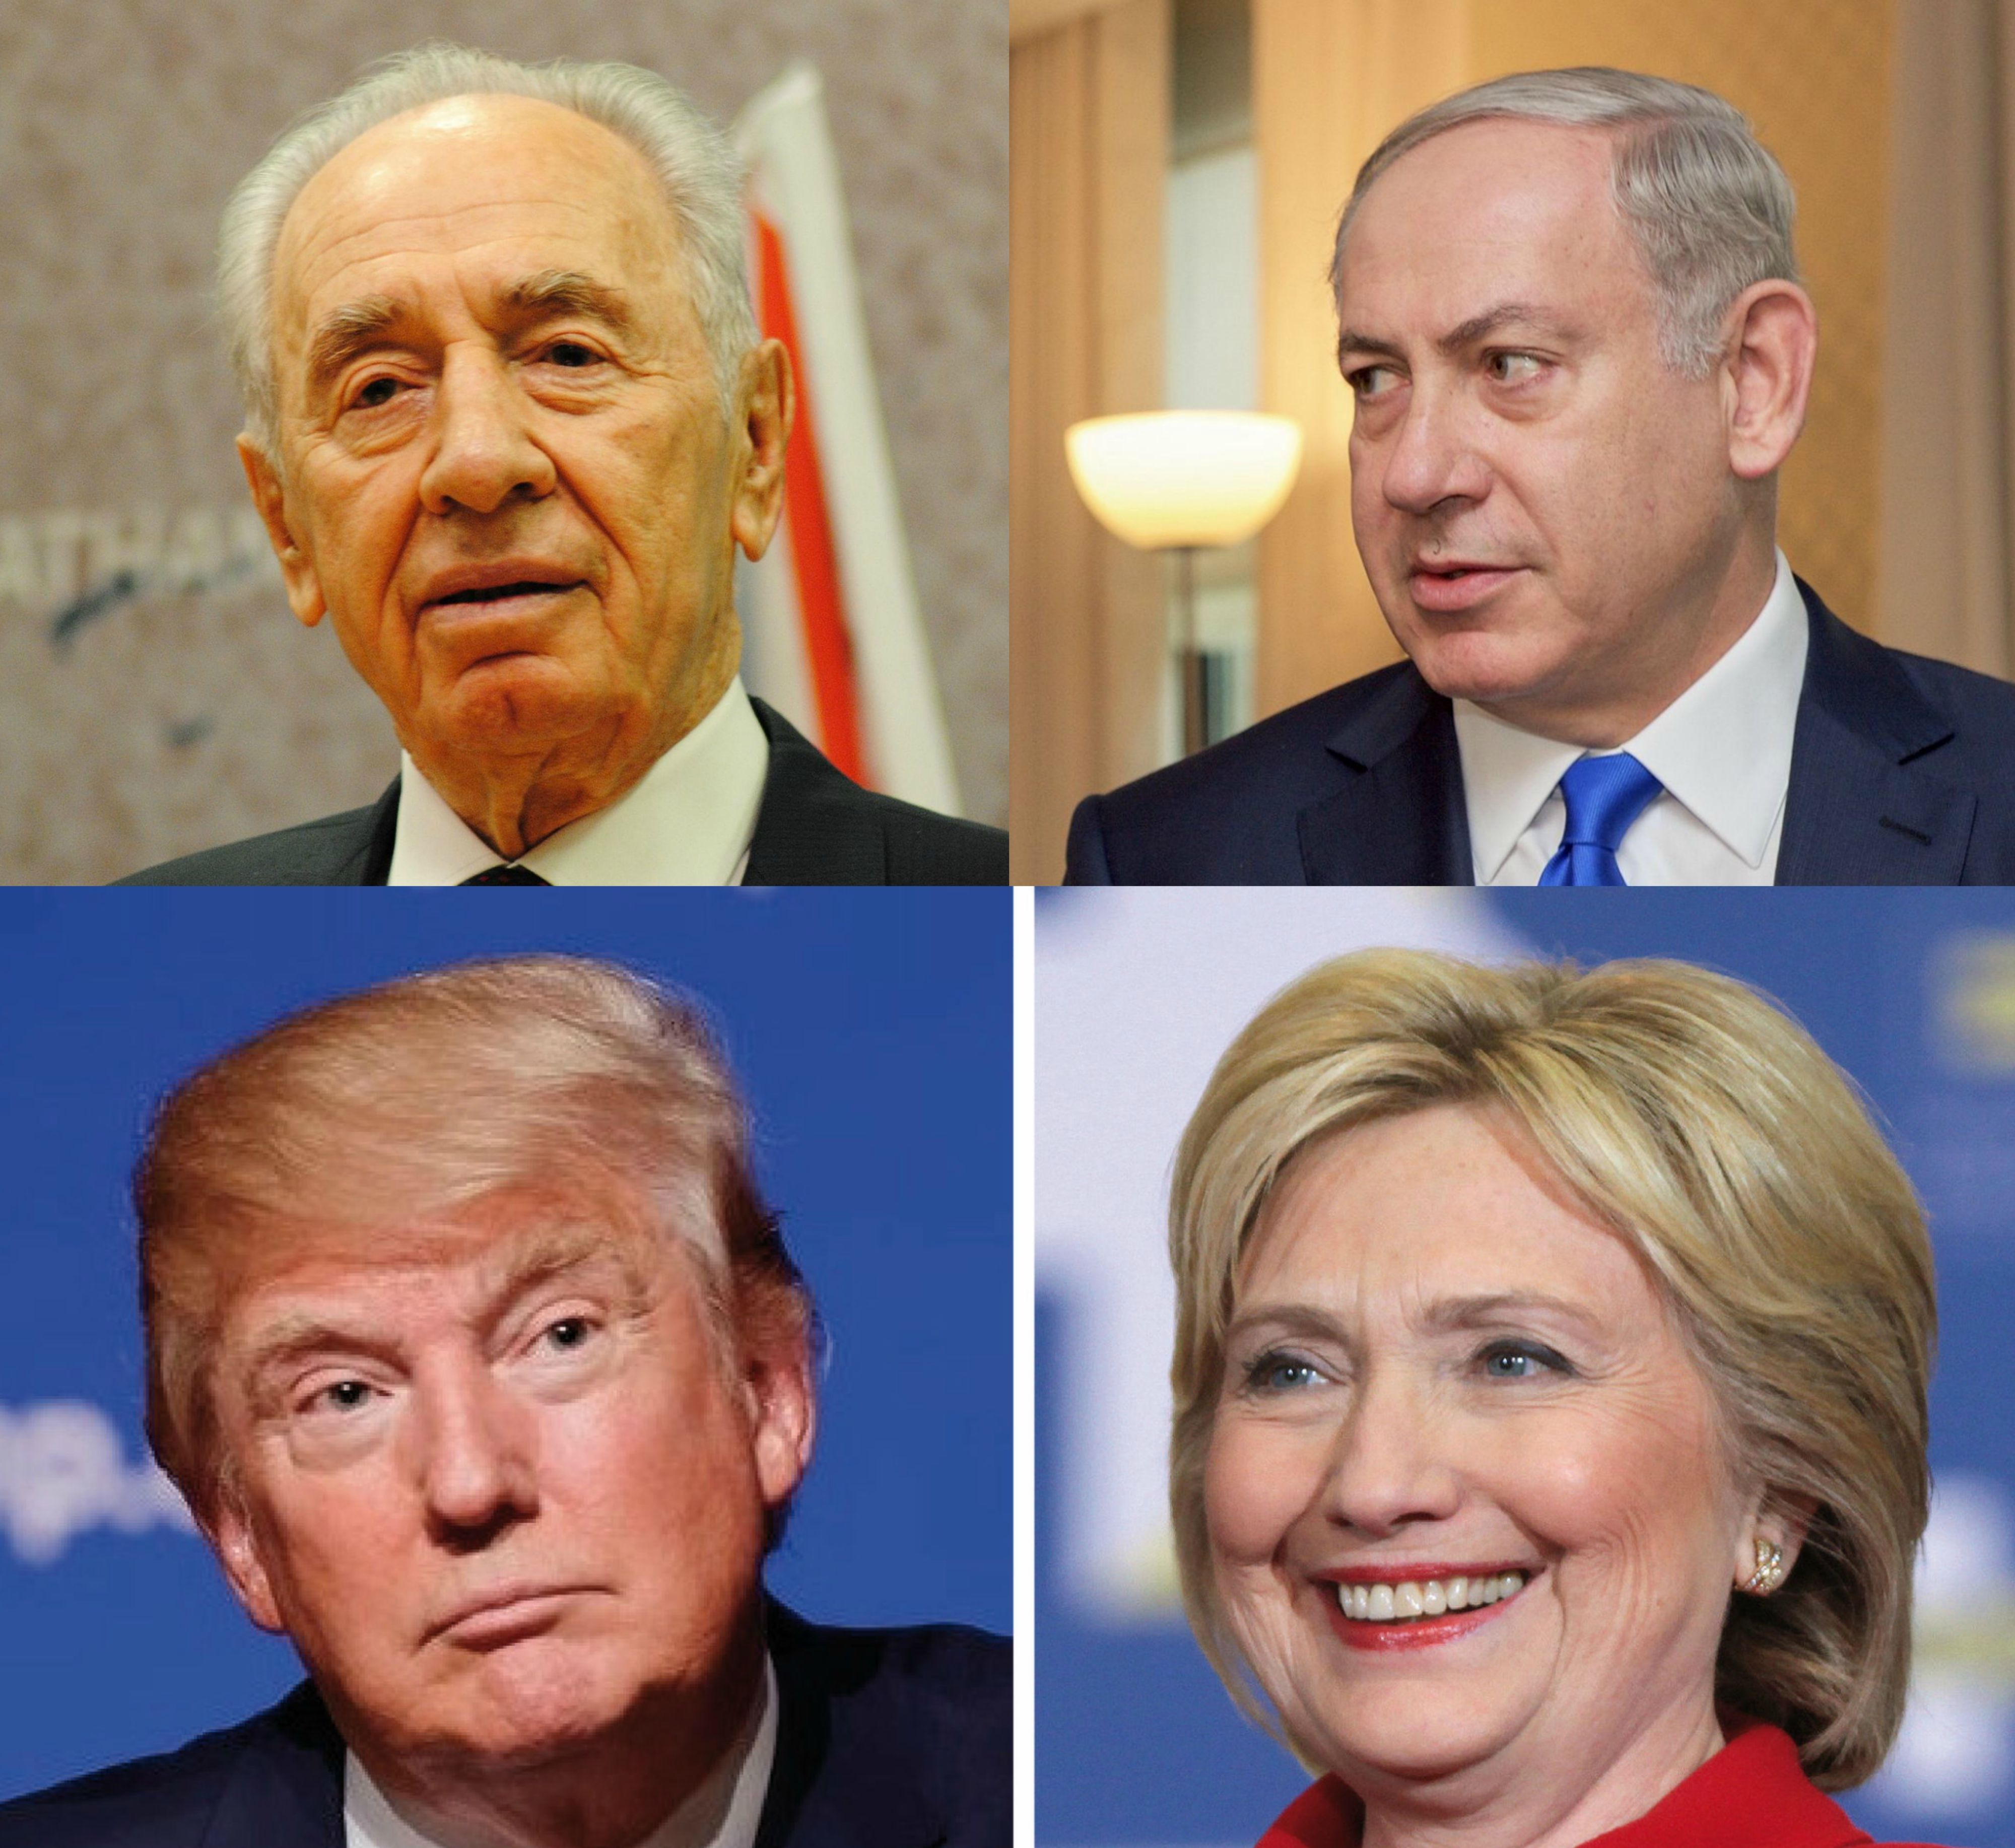 When Demagoguery Trumped Experience in Israel